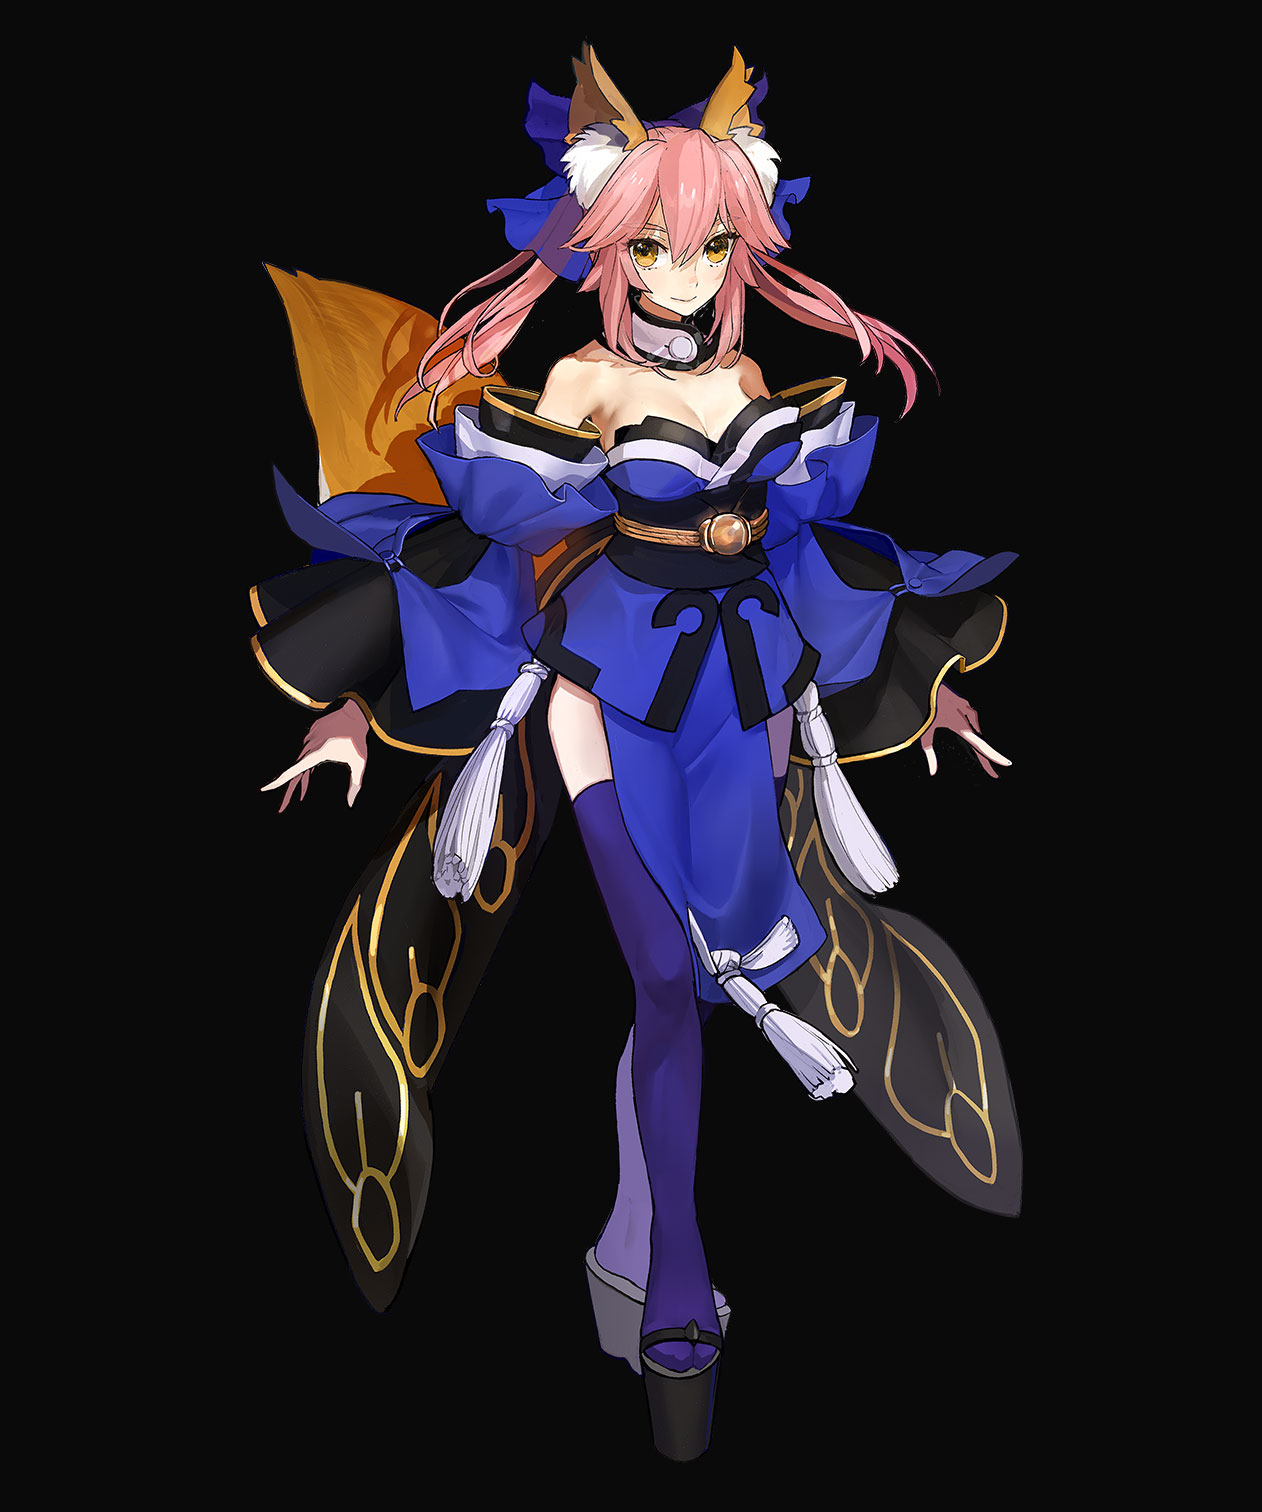 Fate/EXTELLA: The Umbral Star - Tamamo no Mae